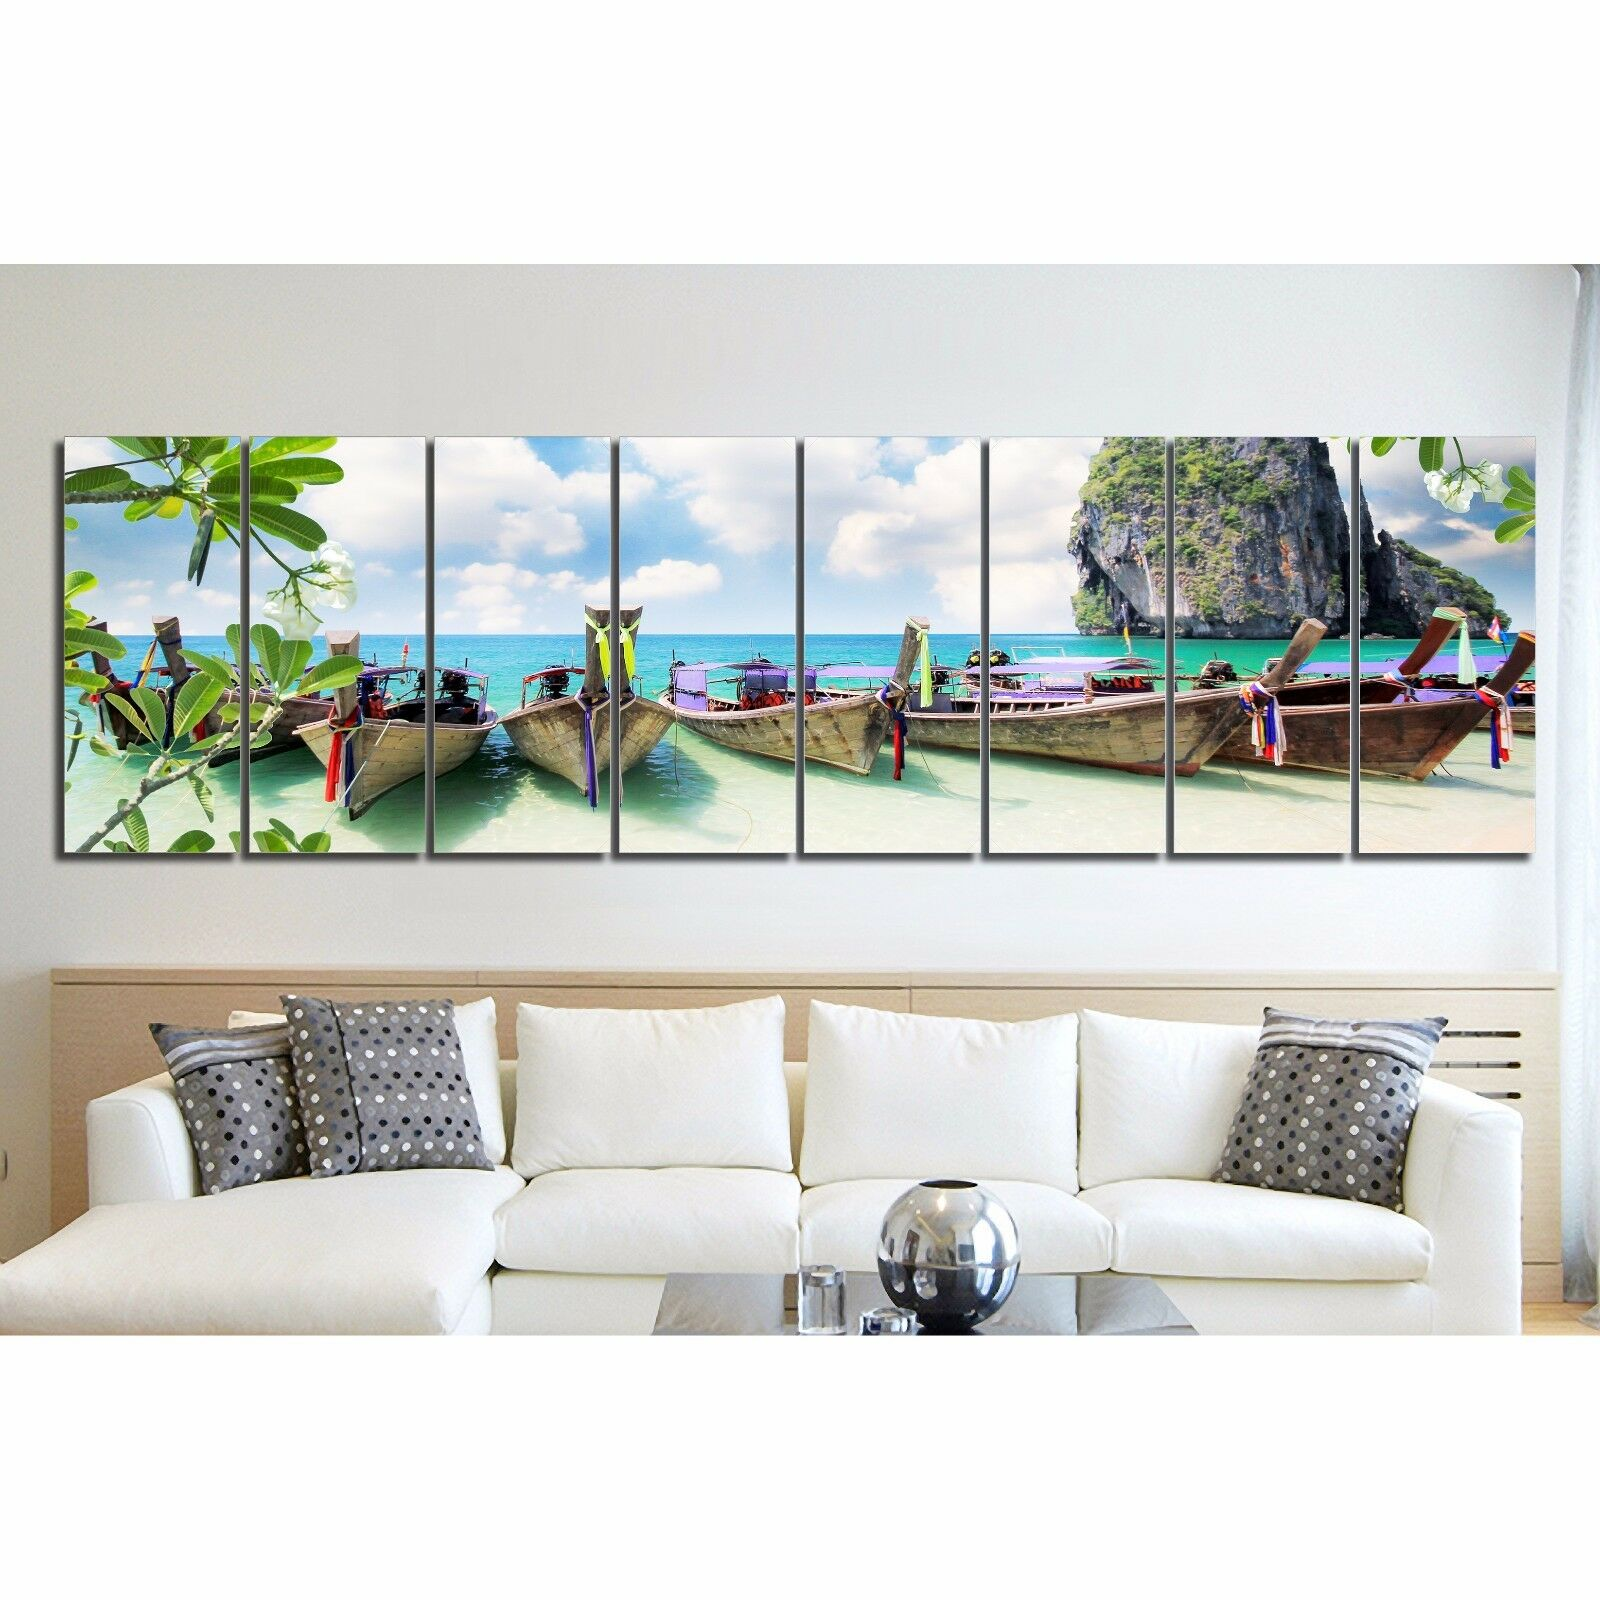 Wall Art Split Canvas : Framed split canvas prints landscape beach colorful boat